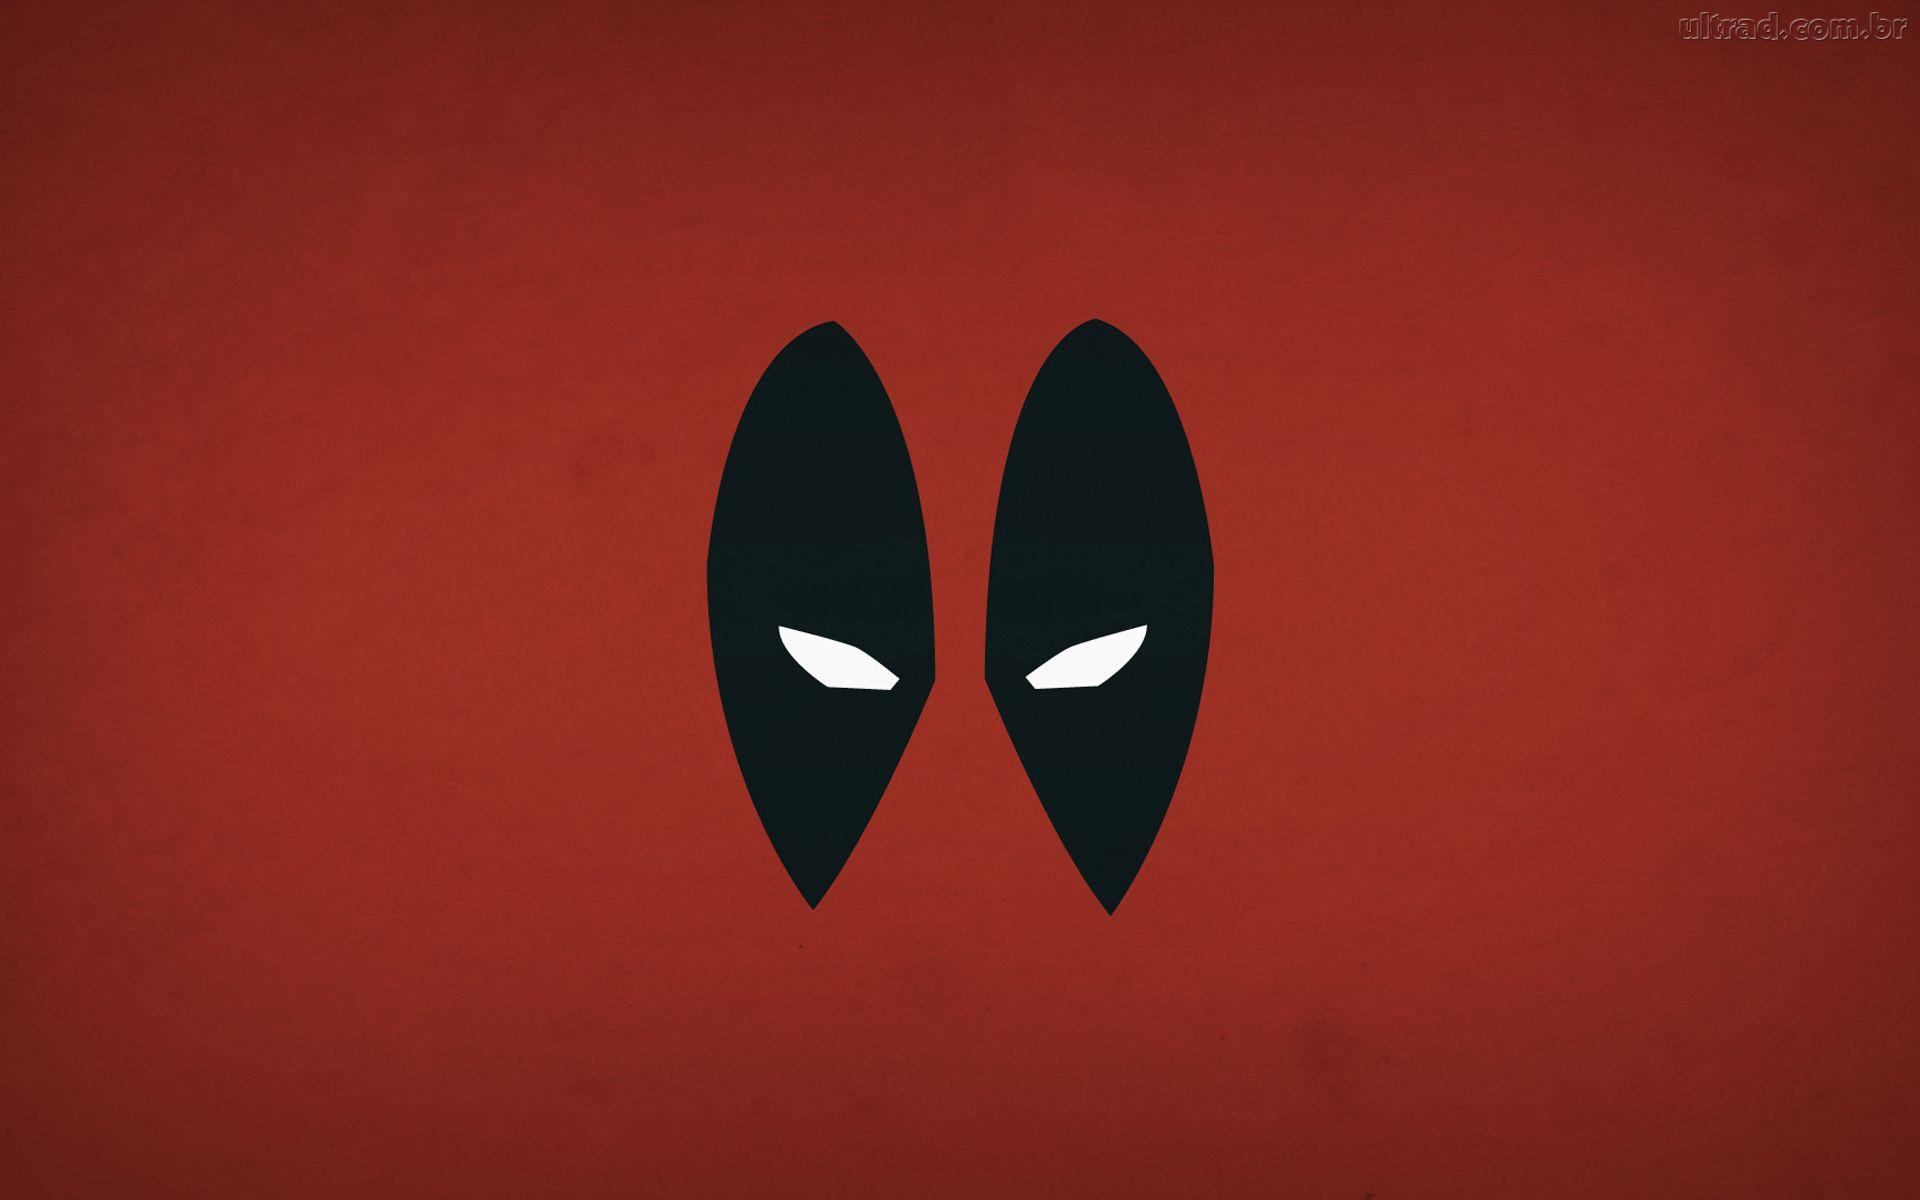 Deadpool Wallpapers HD - Wallpaper Cave